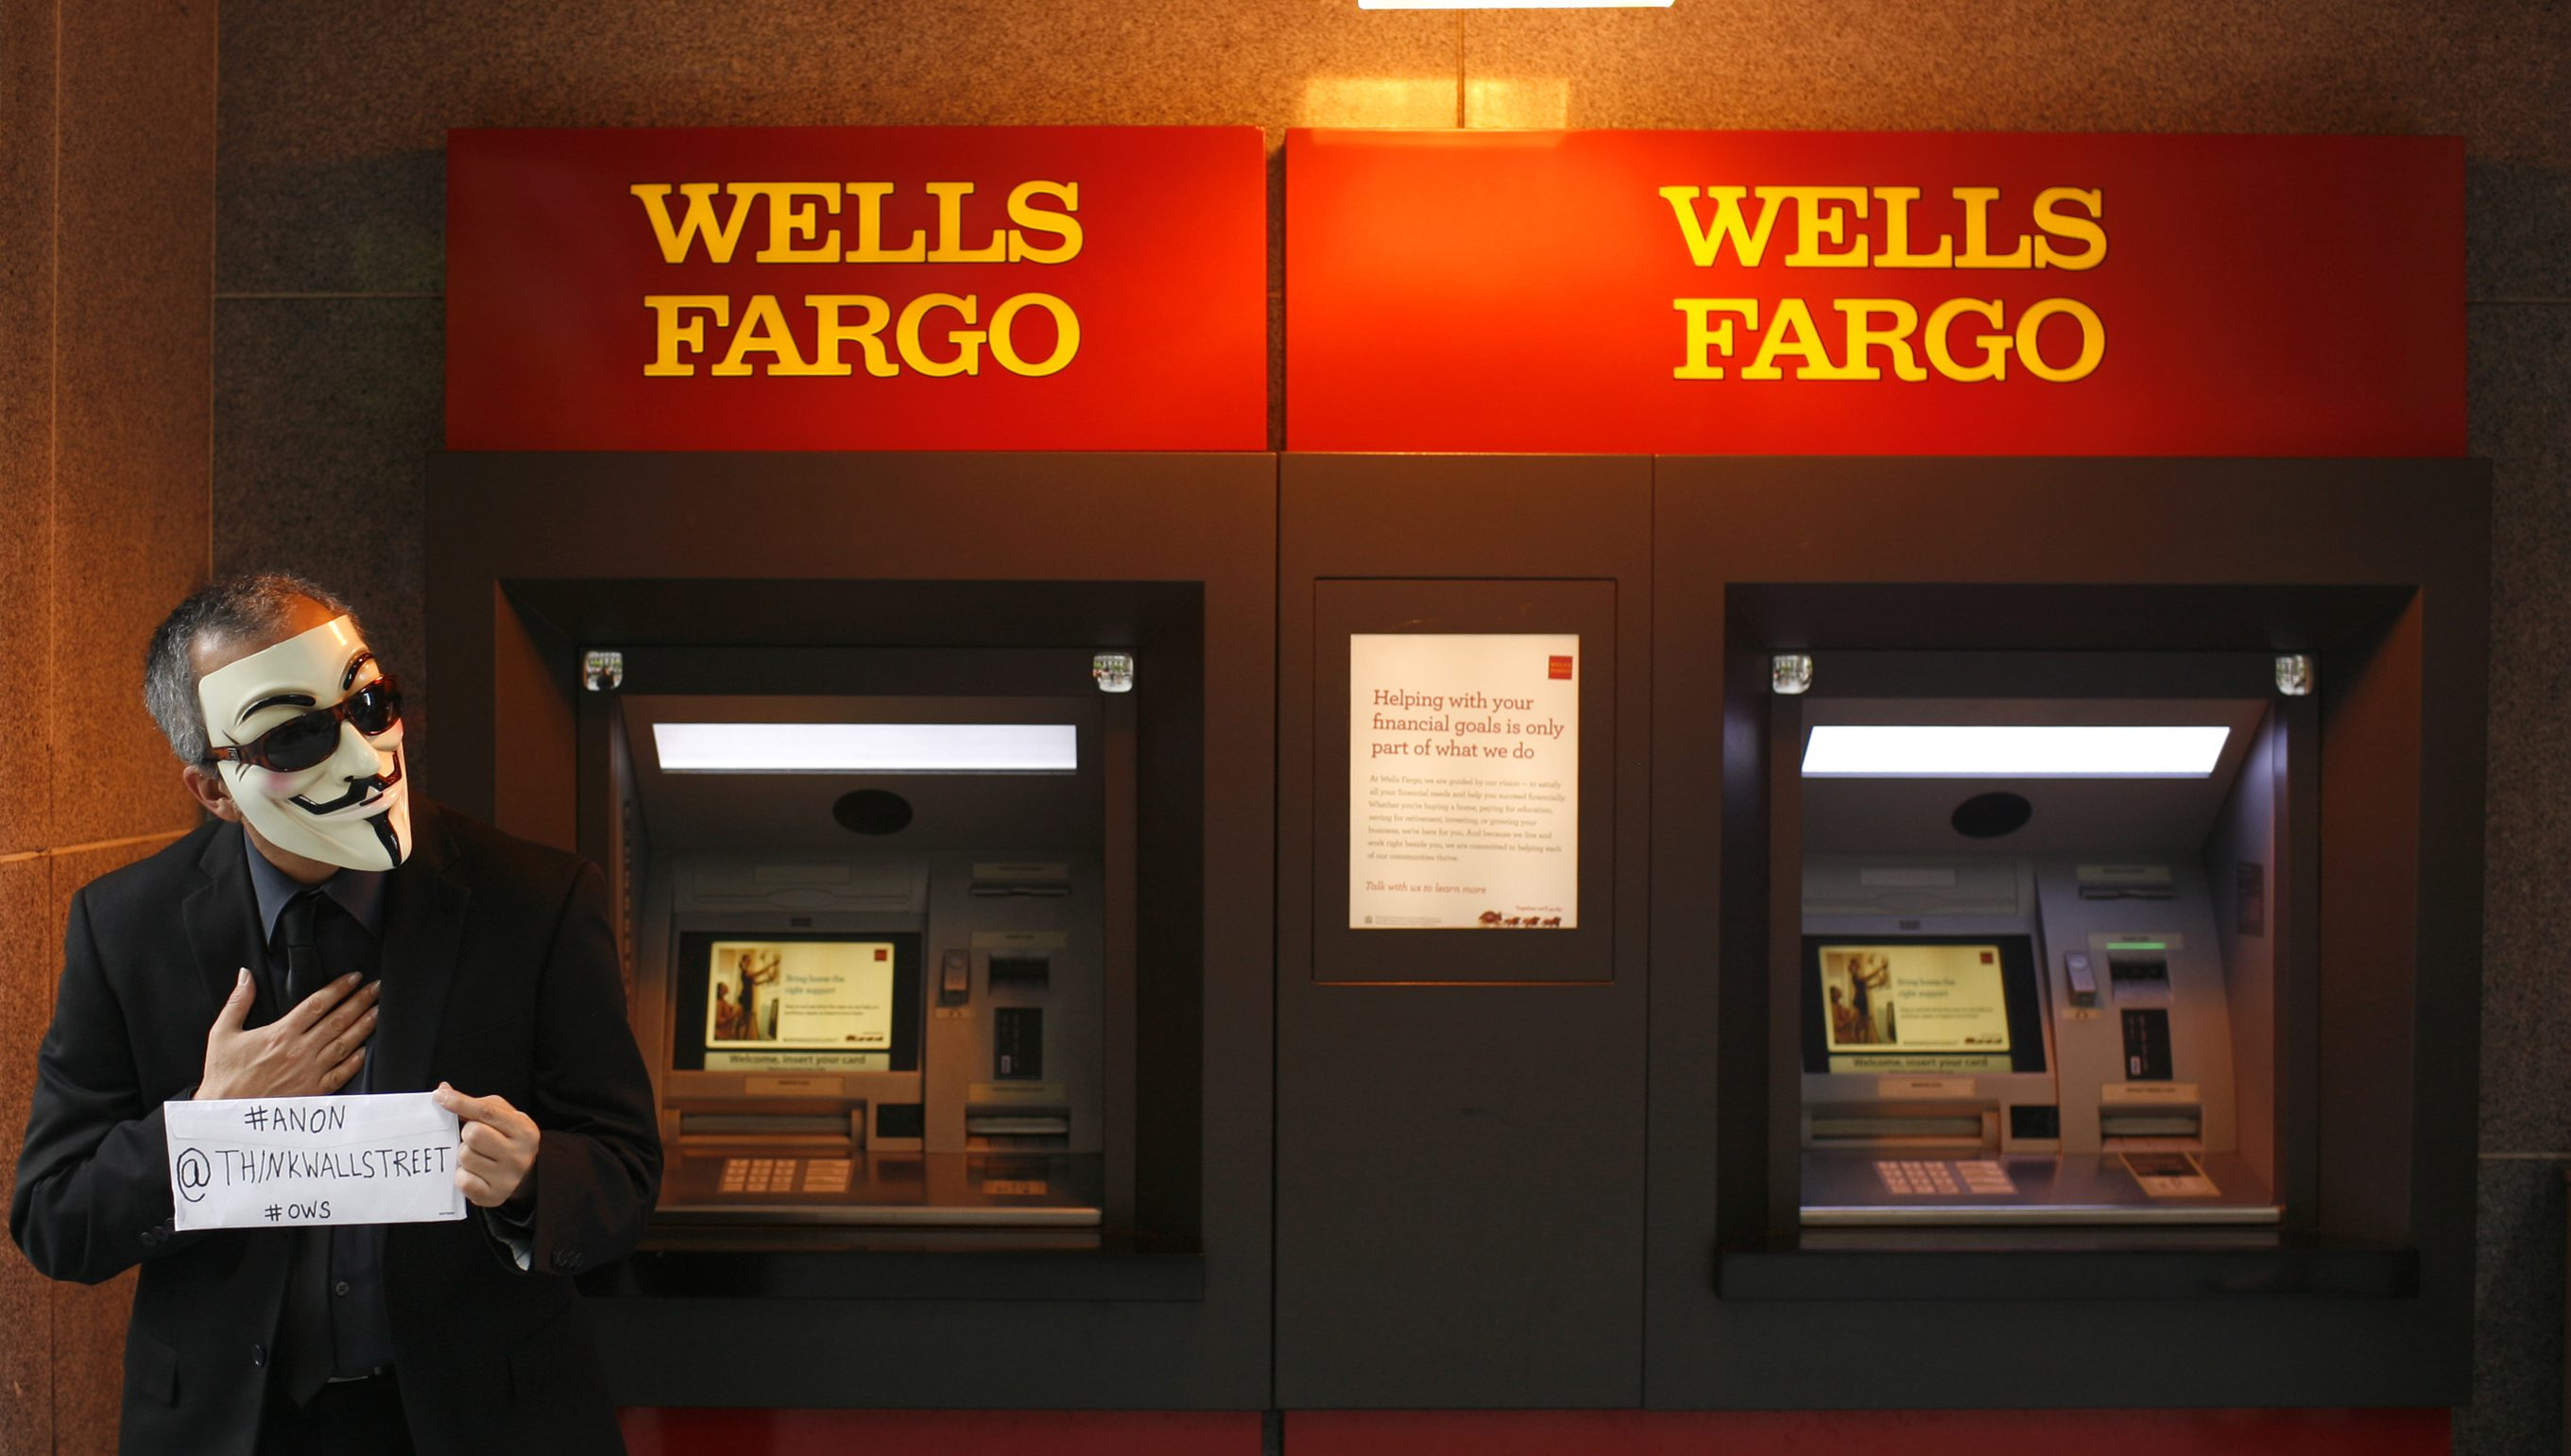 A demonstrator wearing a Guy Fawkes mask stands near an ATM machine during a protest outside of the Wells Fargo shareholders meeting in the Financial District in San Francisco, California April 24, 2012. REUTERS/Robert Galbraith  (UNITED STATES - Tags: BUSINESS CIVIL UNREST)